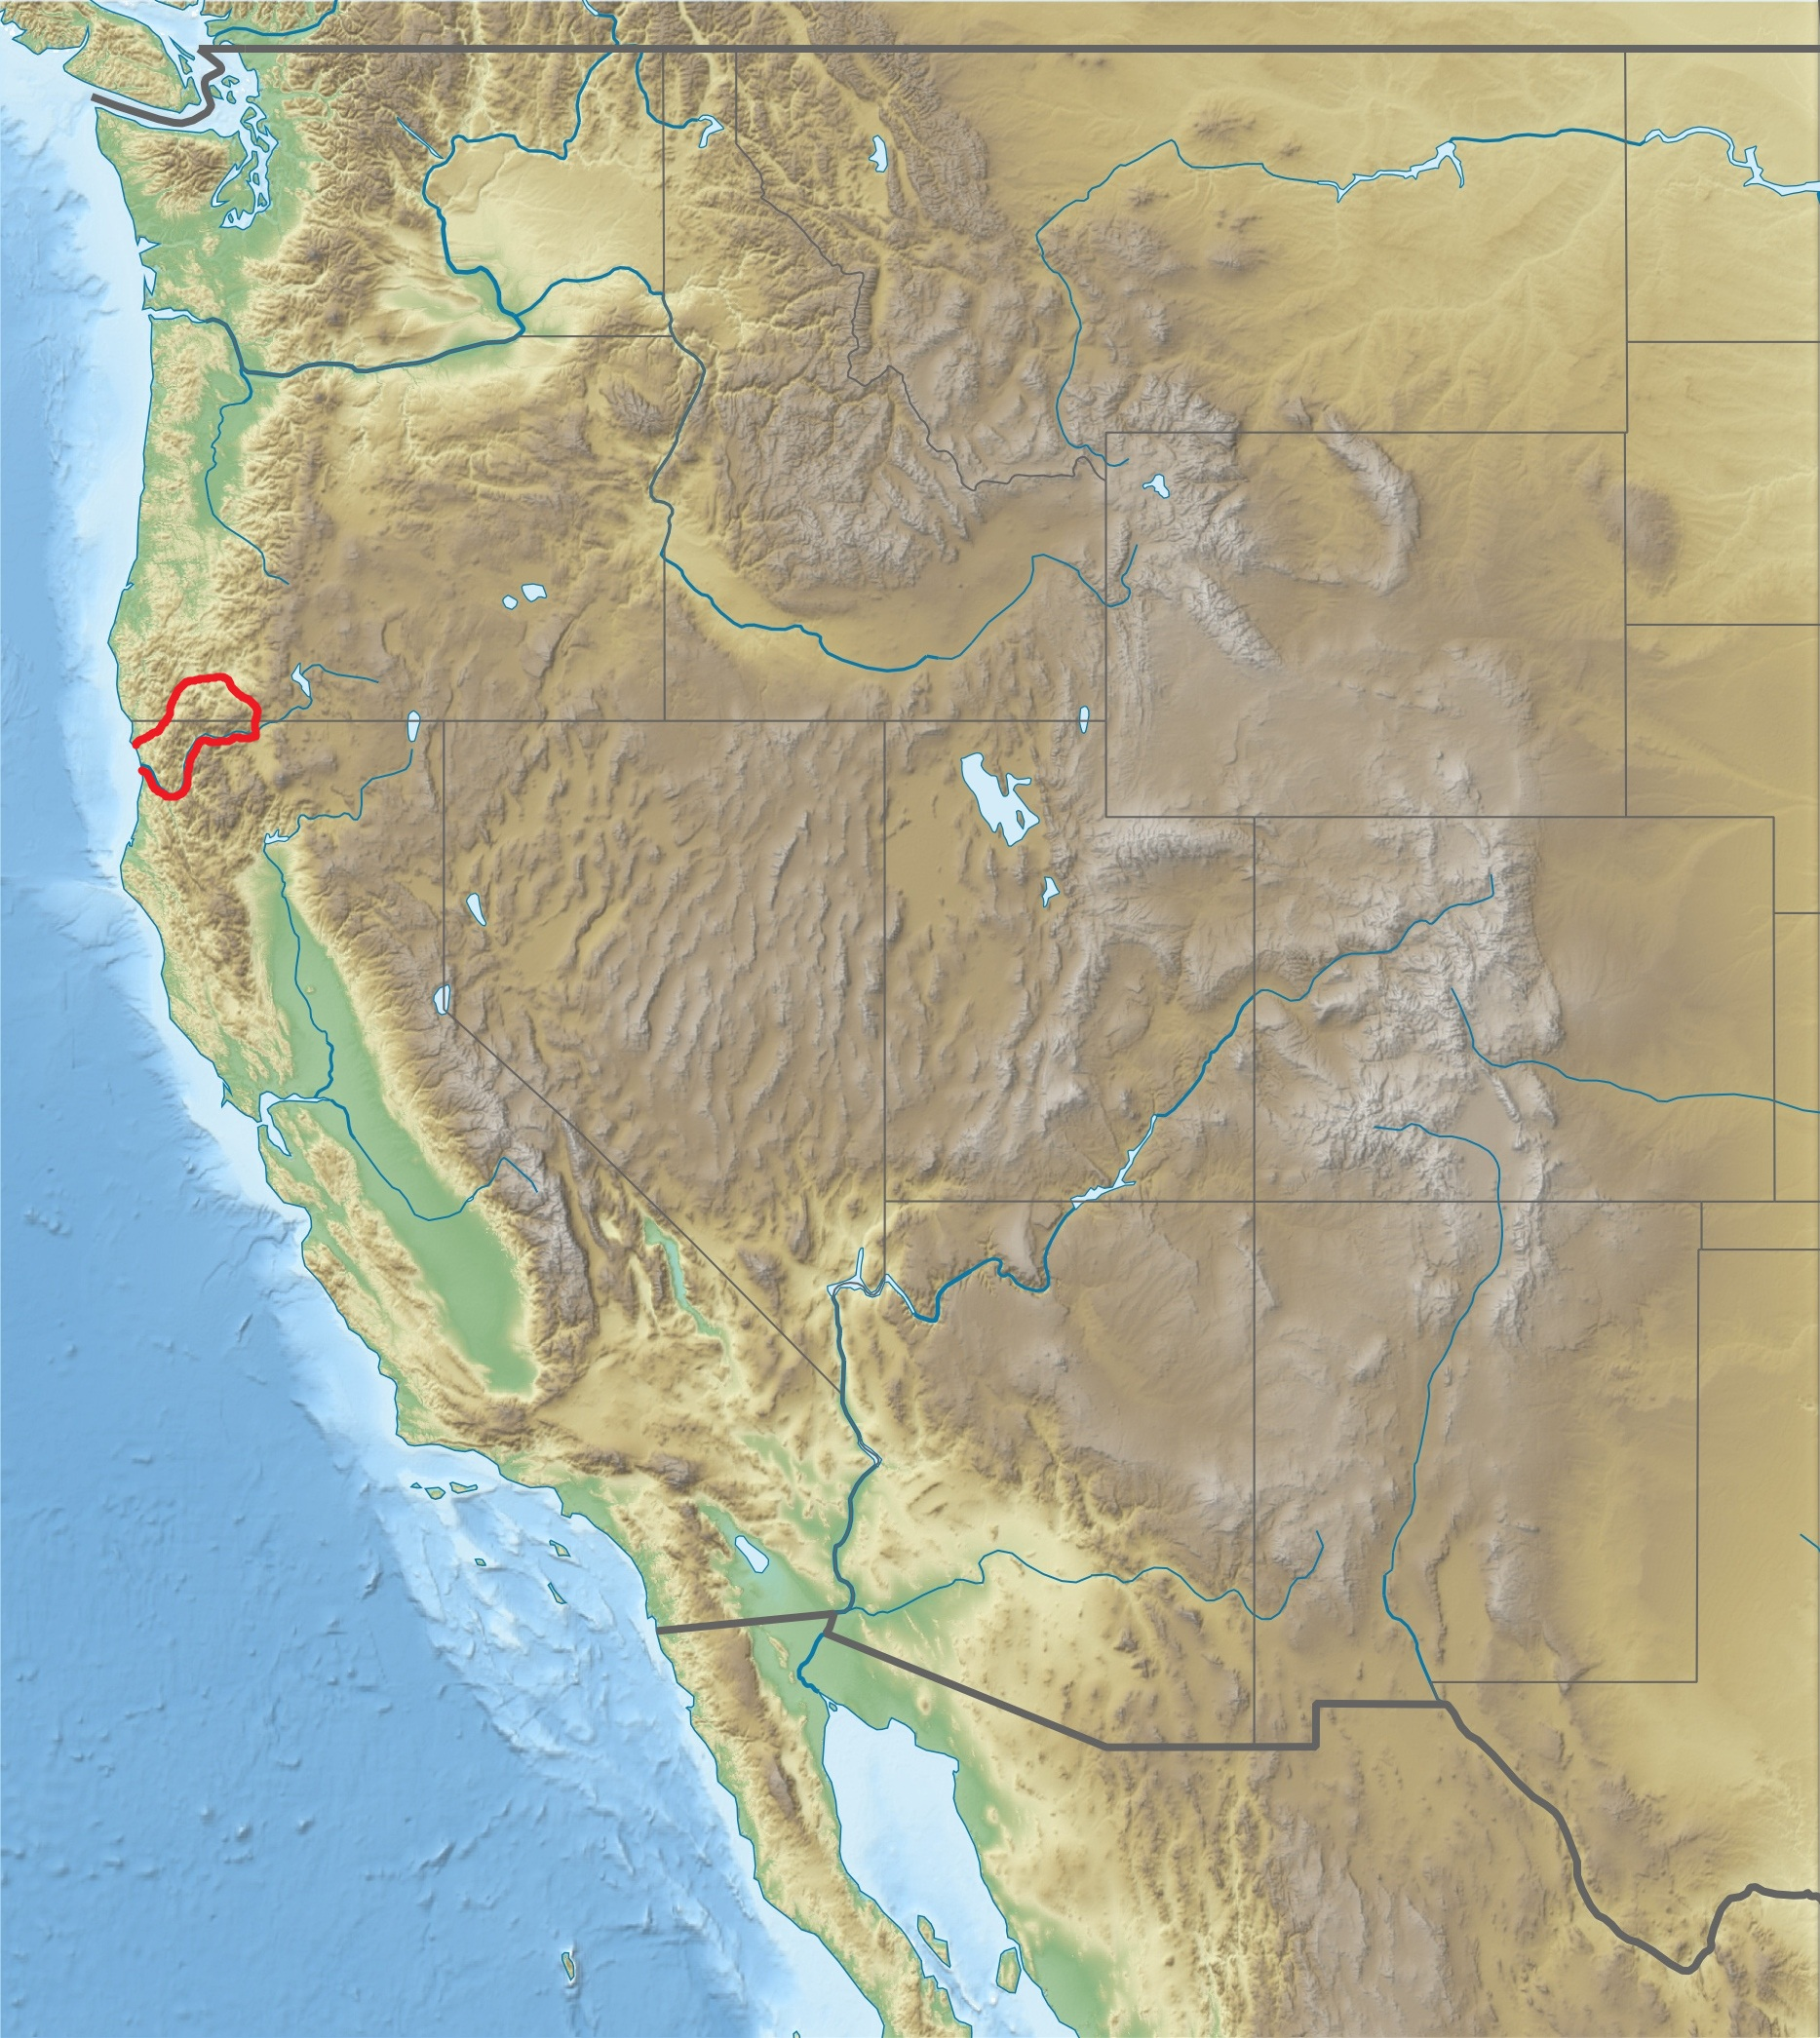 FileUSA Region West Relief Siskiyou Mountains Location Mapjpg - Mountains of usa map